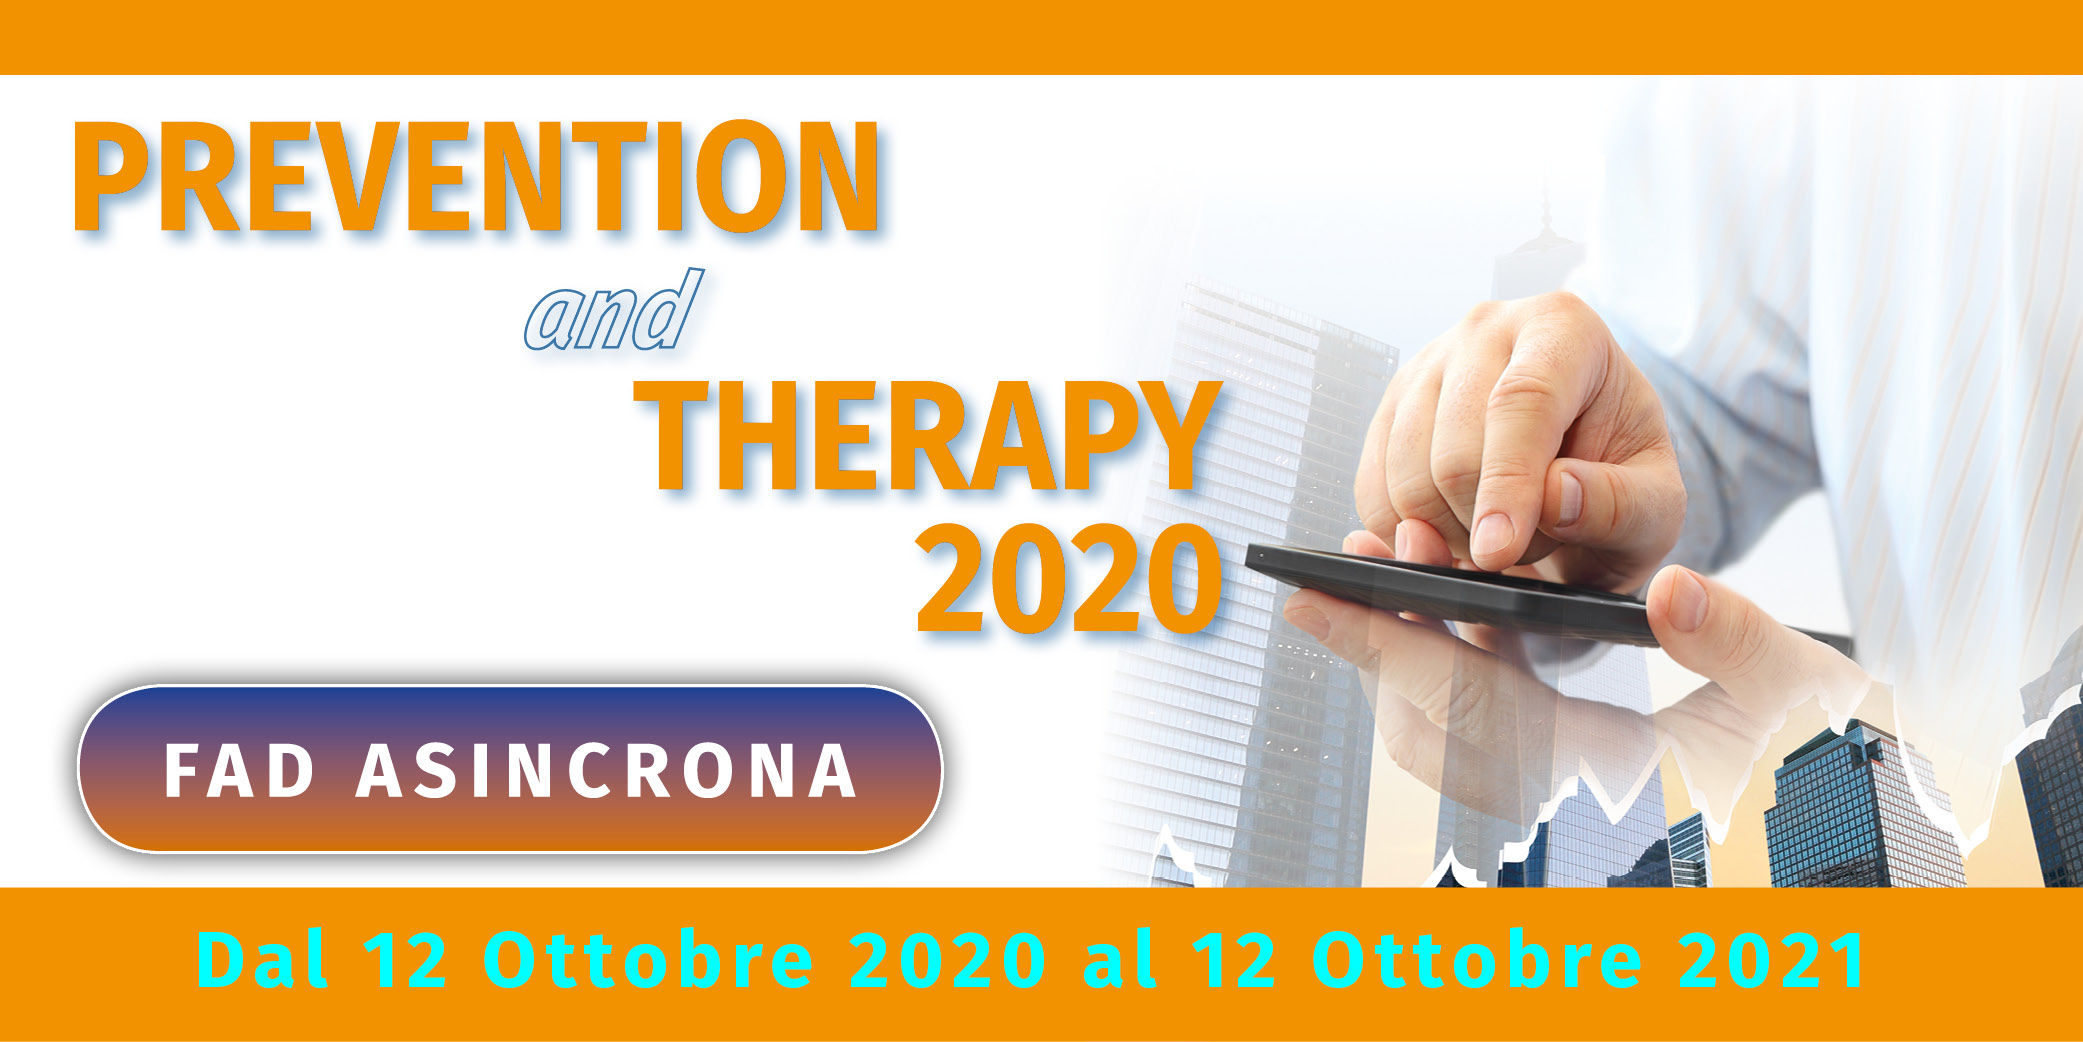 Prevention and Therapy 2020